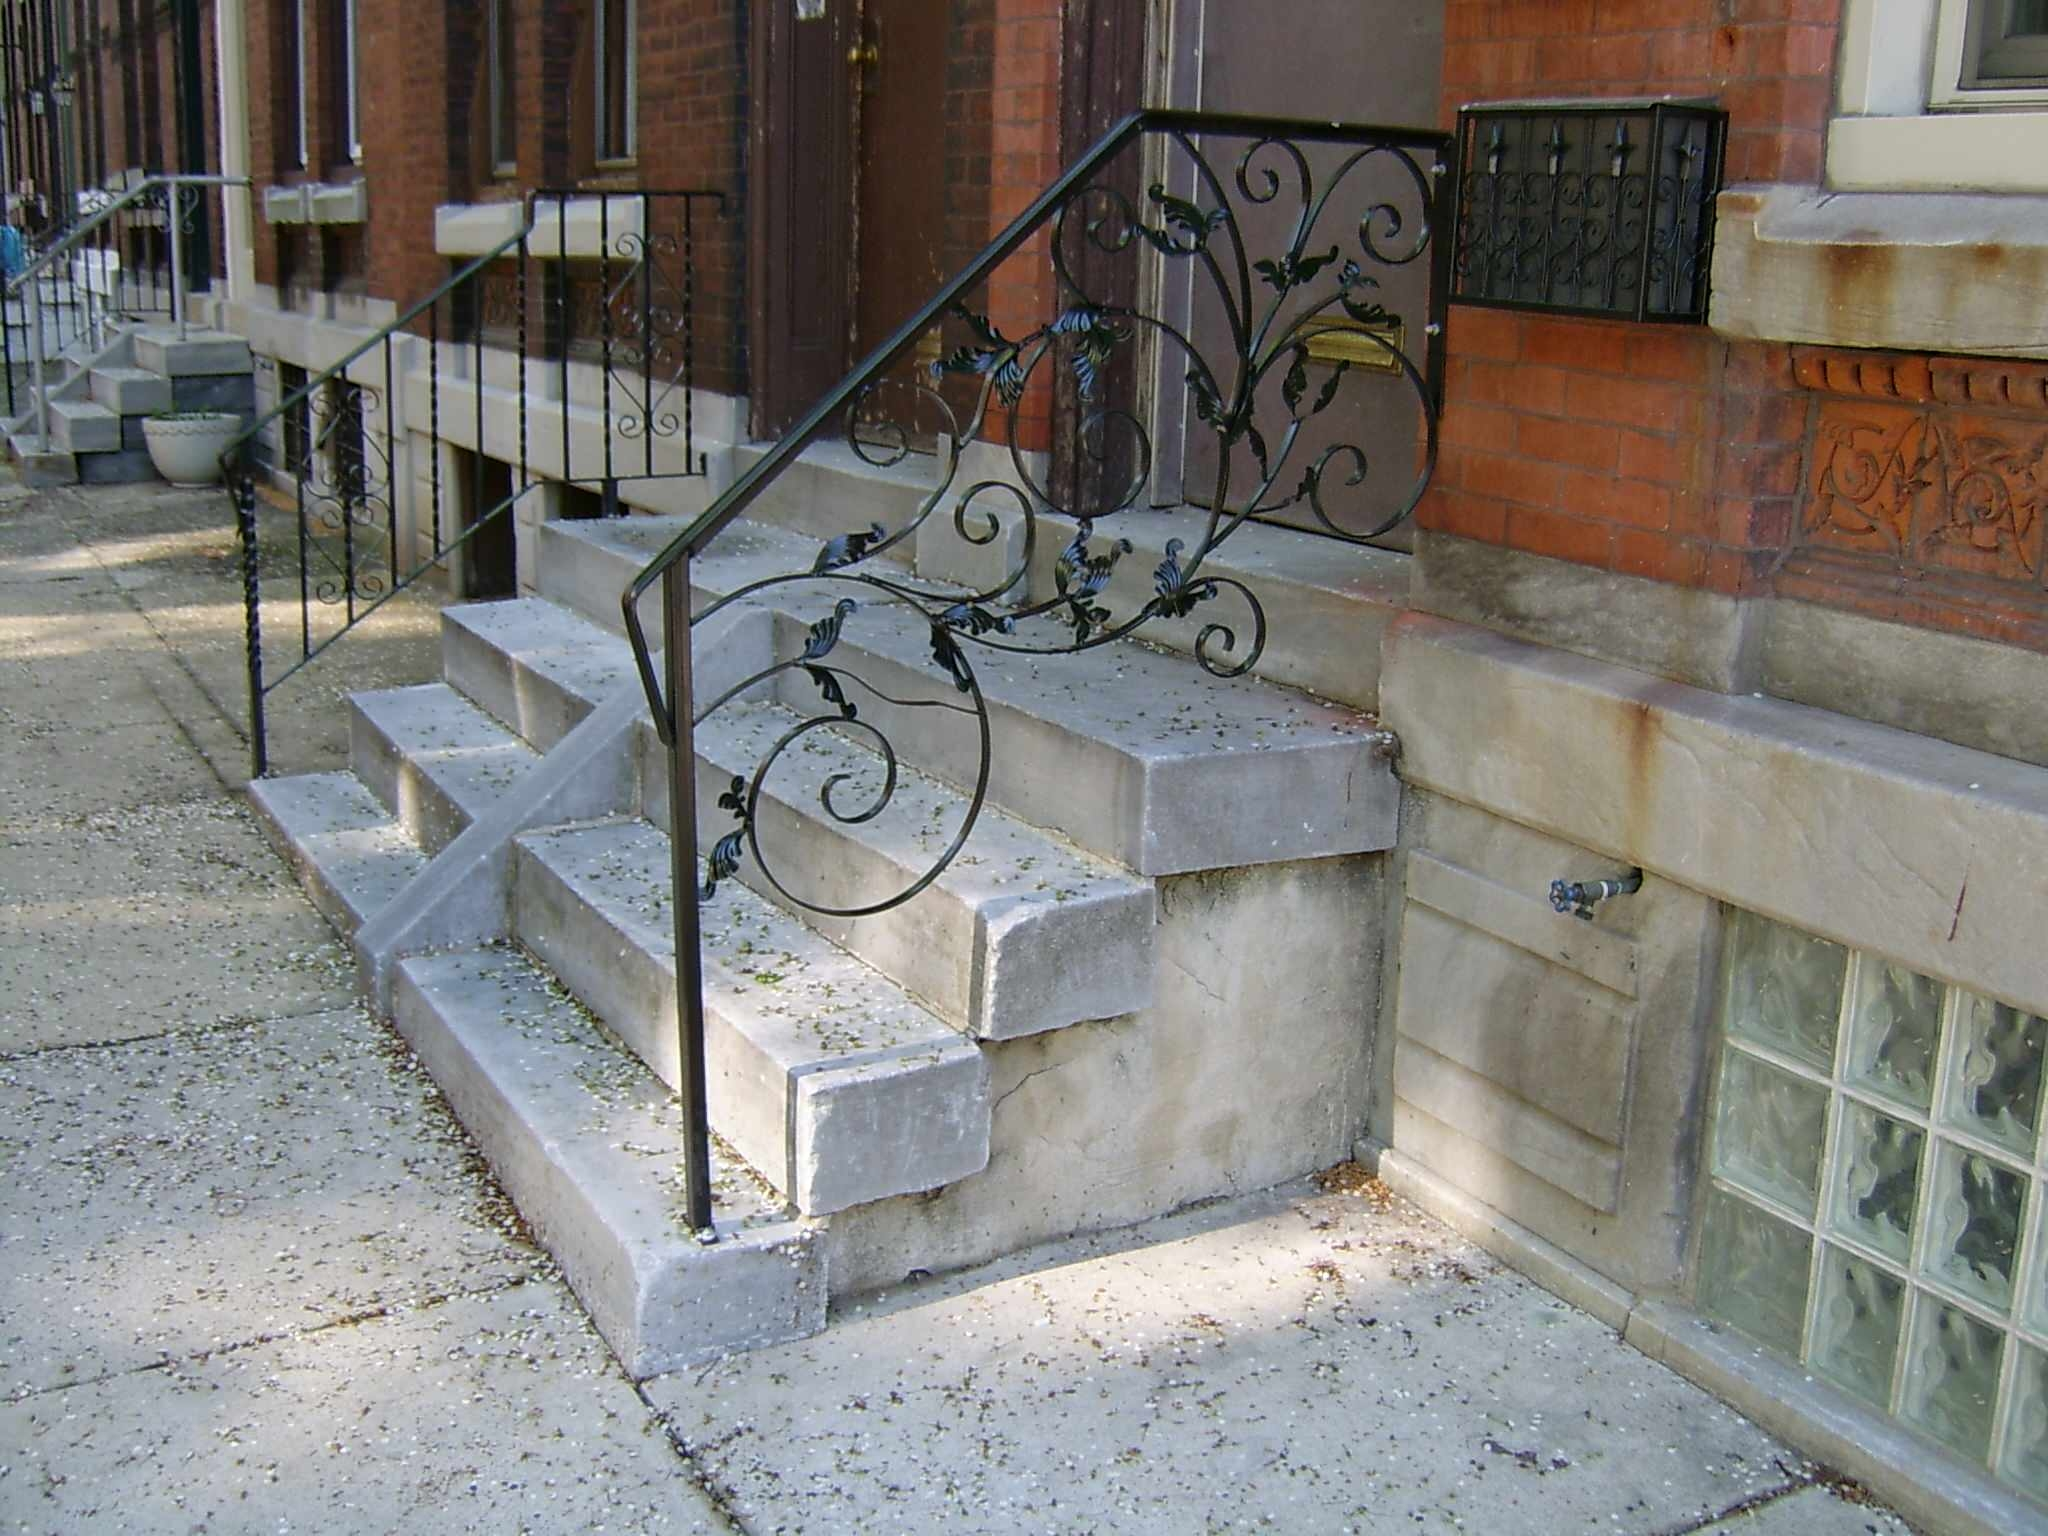 Modern Front Porch Railings Ideas Photos Houzz   Outdoor Handrails For Concrete Steps   Contemporary   Hand Rail   Precast   Stair   Water Pipe